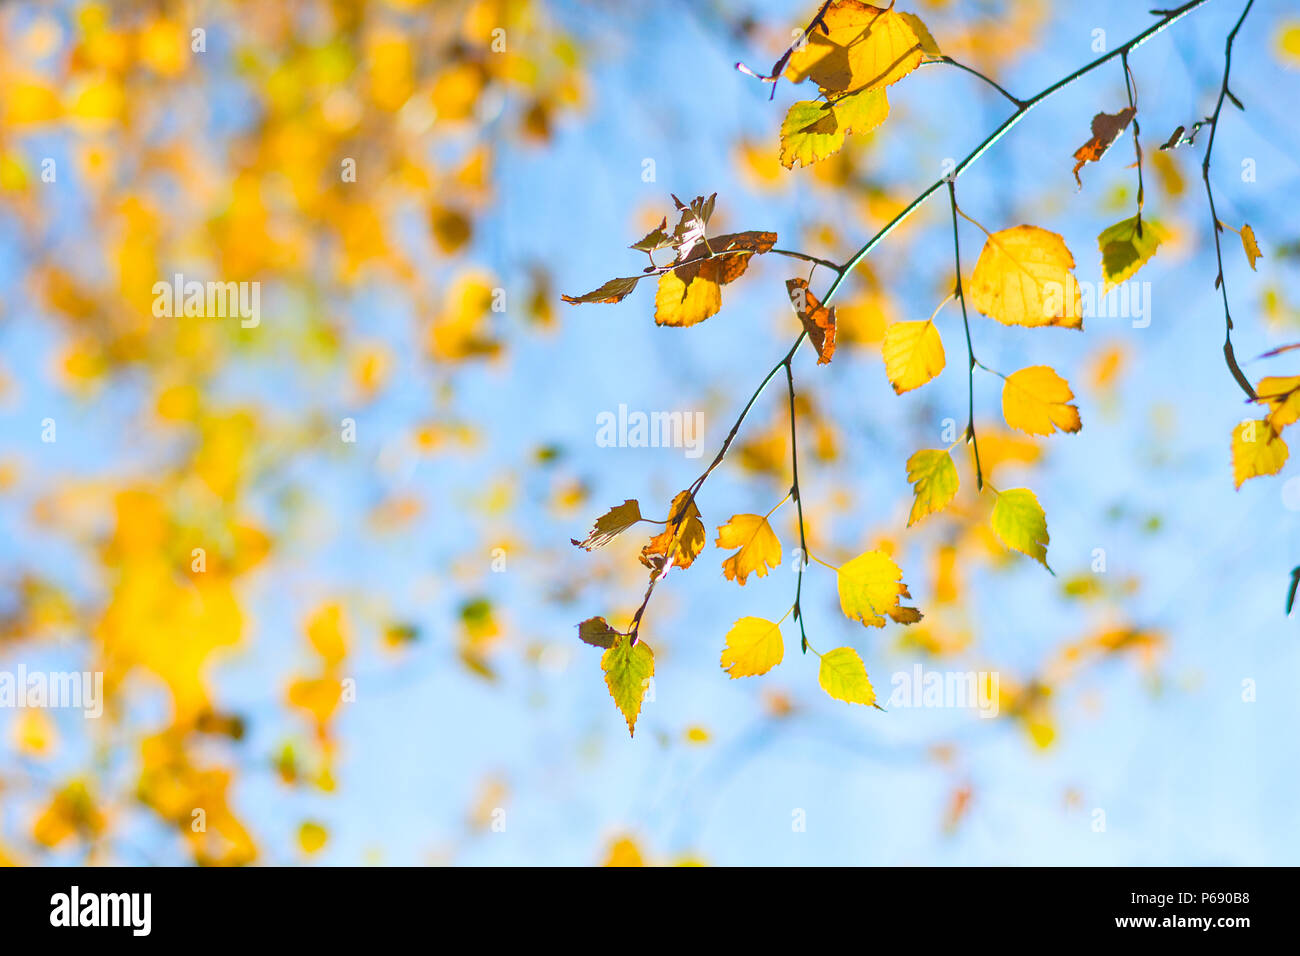 Yellow birch leaves on blue sky background. Autumn fall - Stock Image